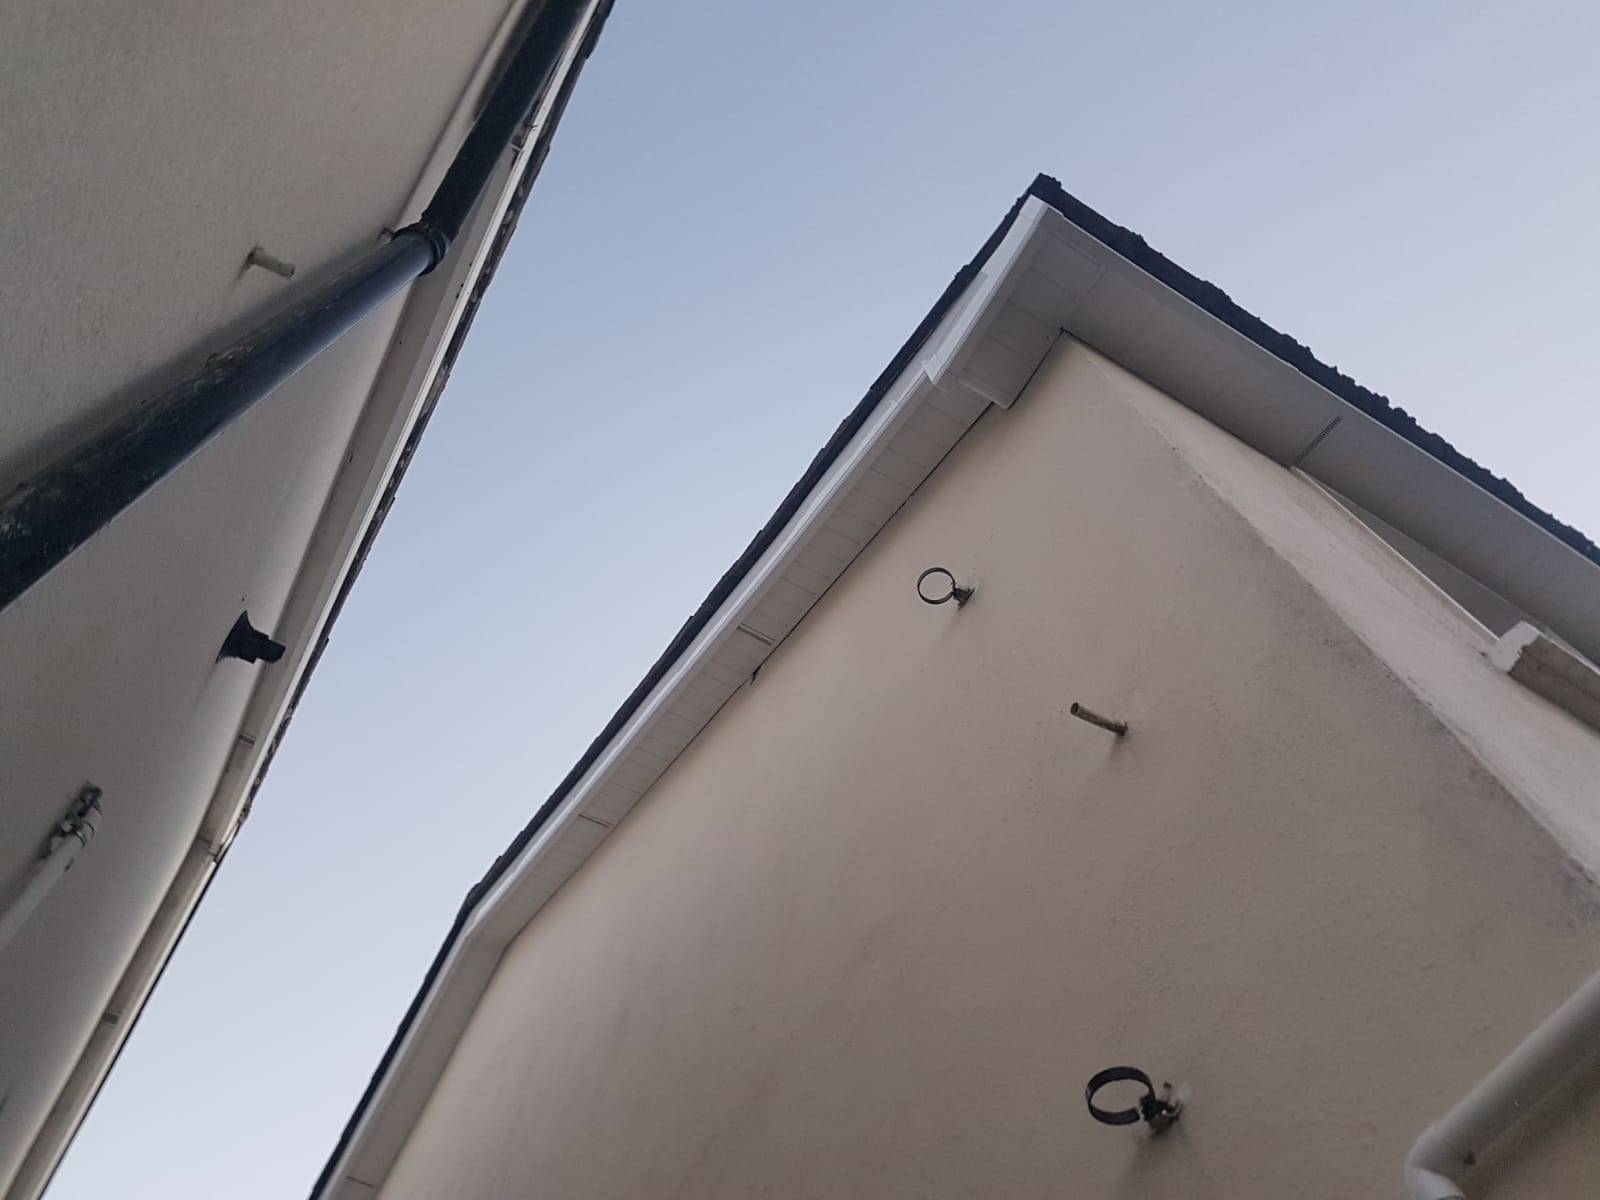 Guttering Repairs in Ballymore Eustace, Co. Kildare